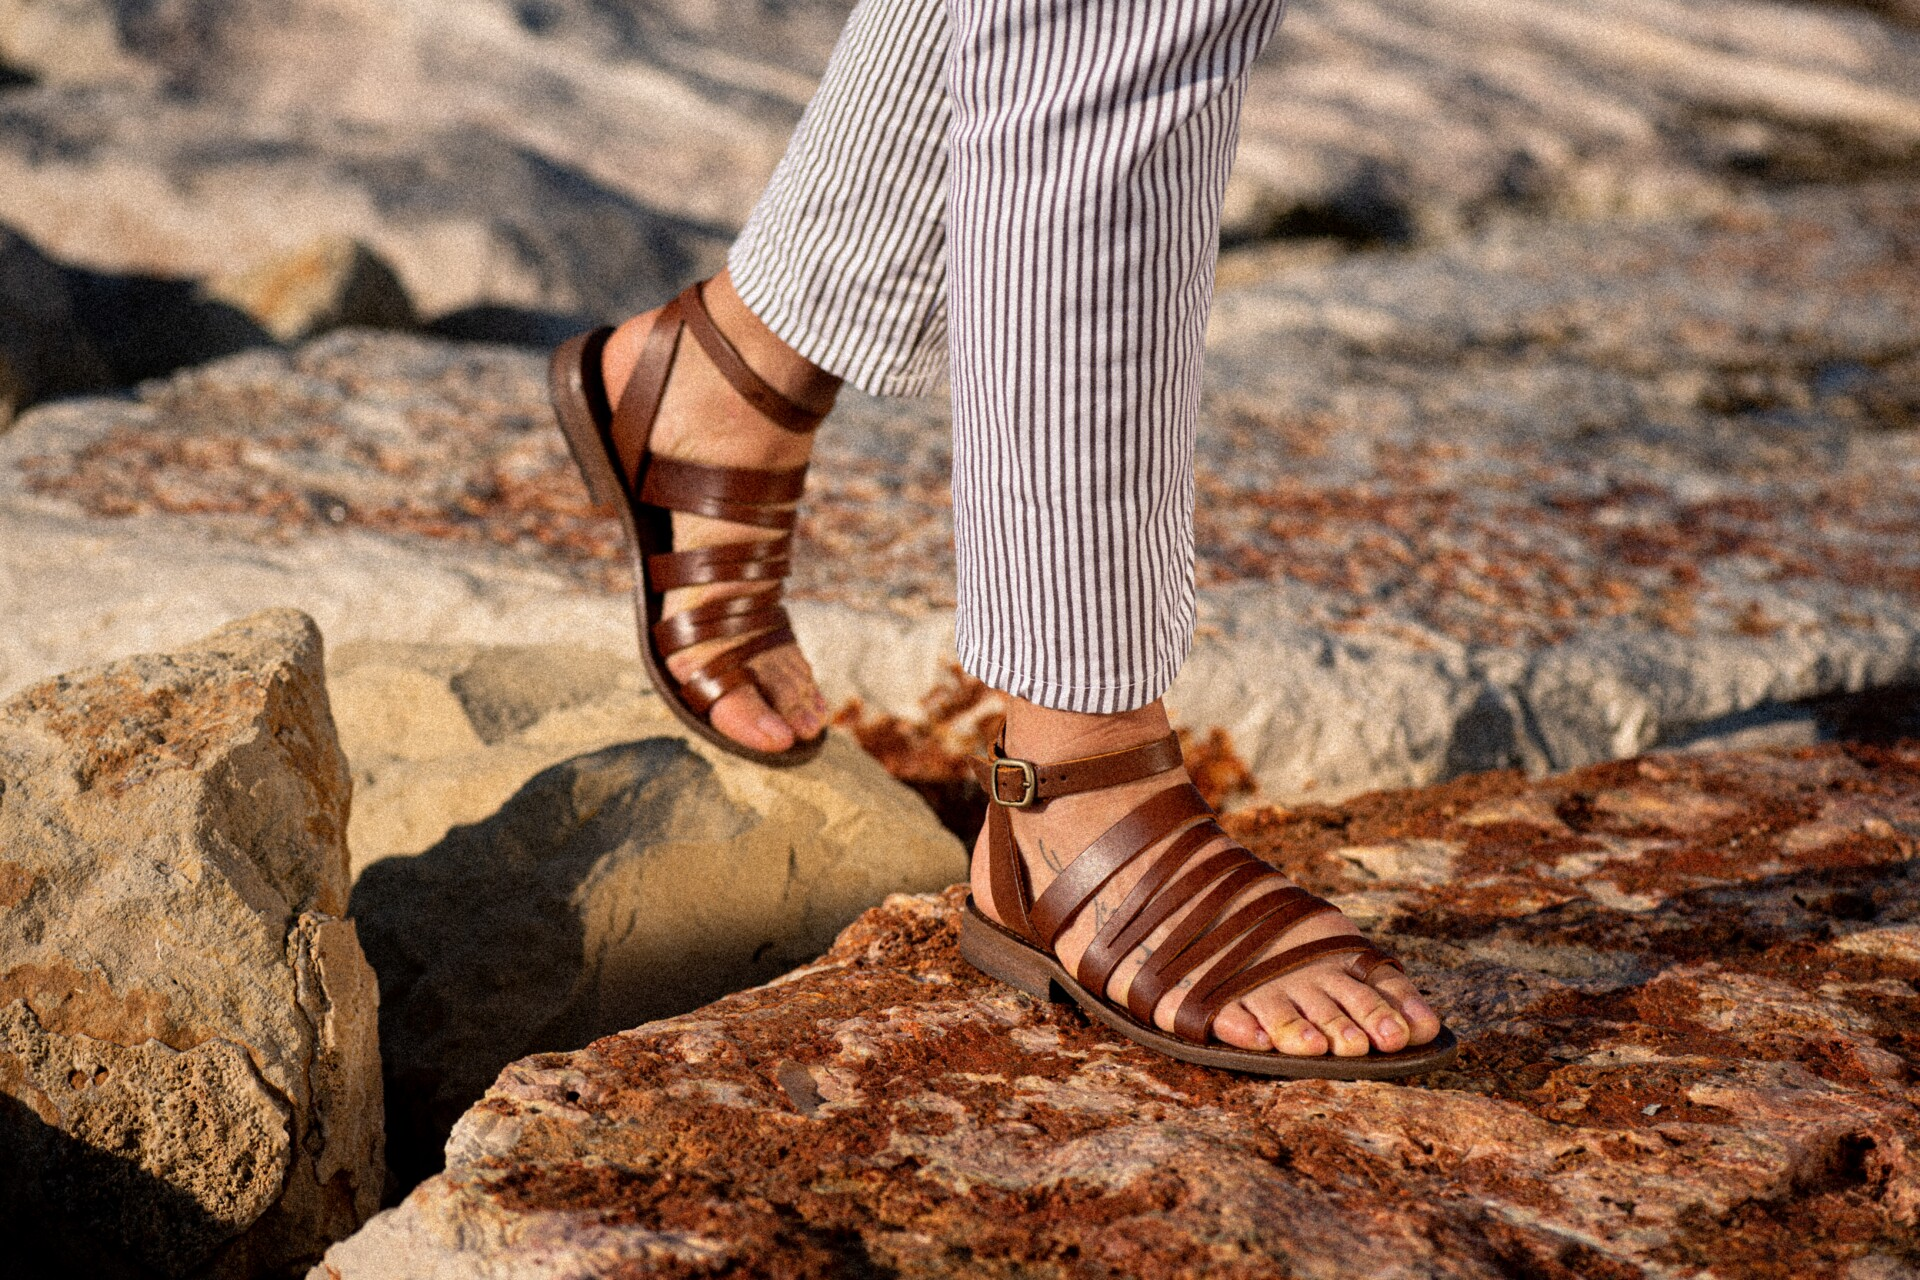 zeus-sandals-made-in-italy-fashion-shop-16